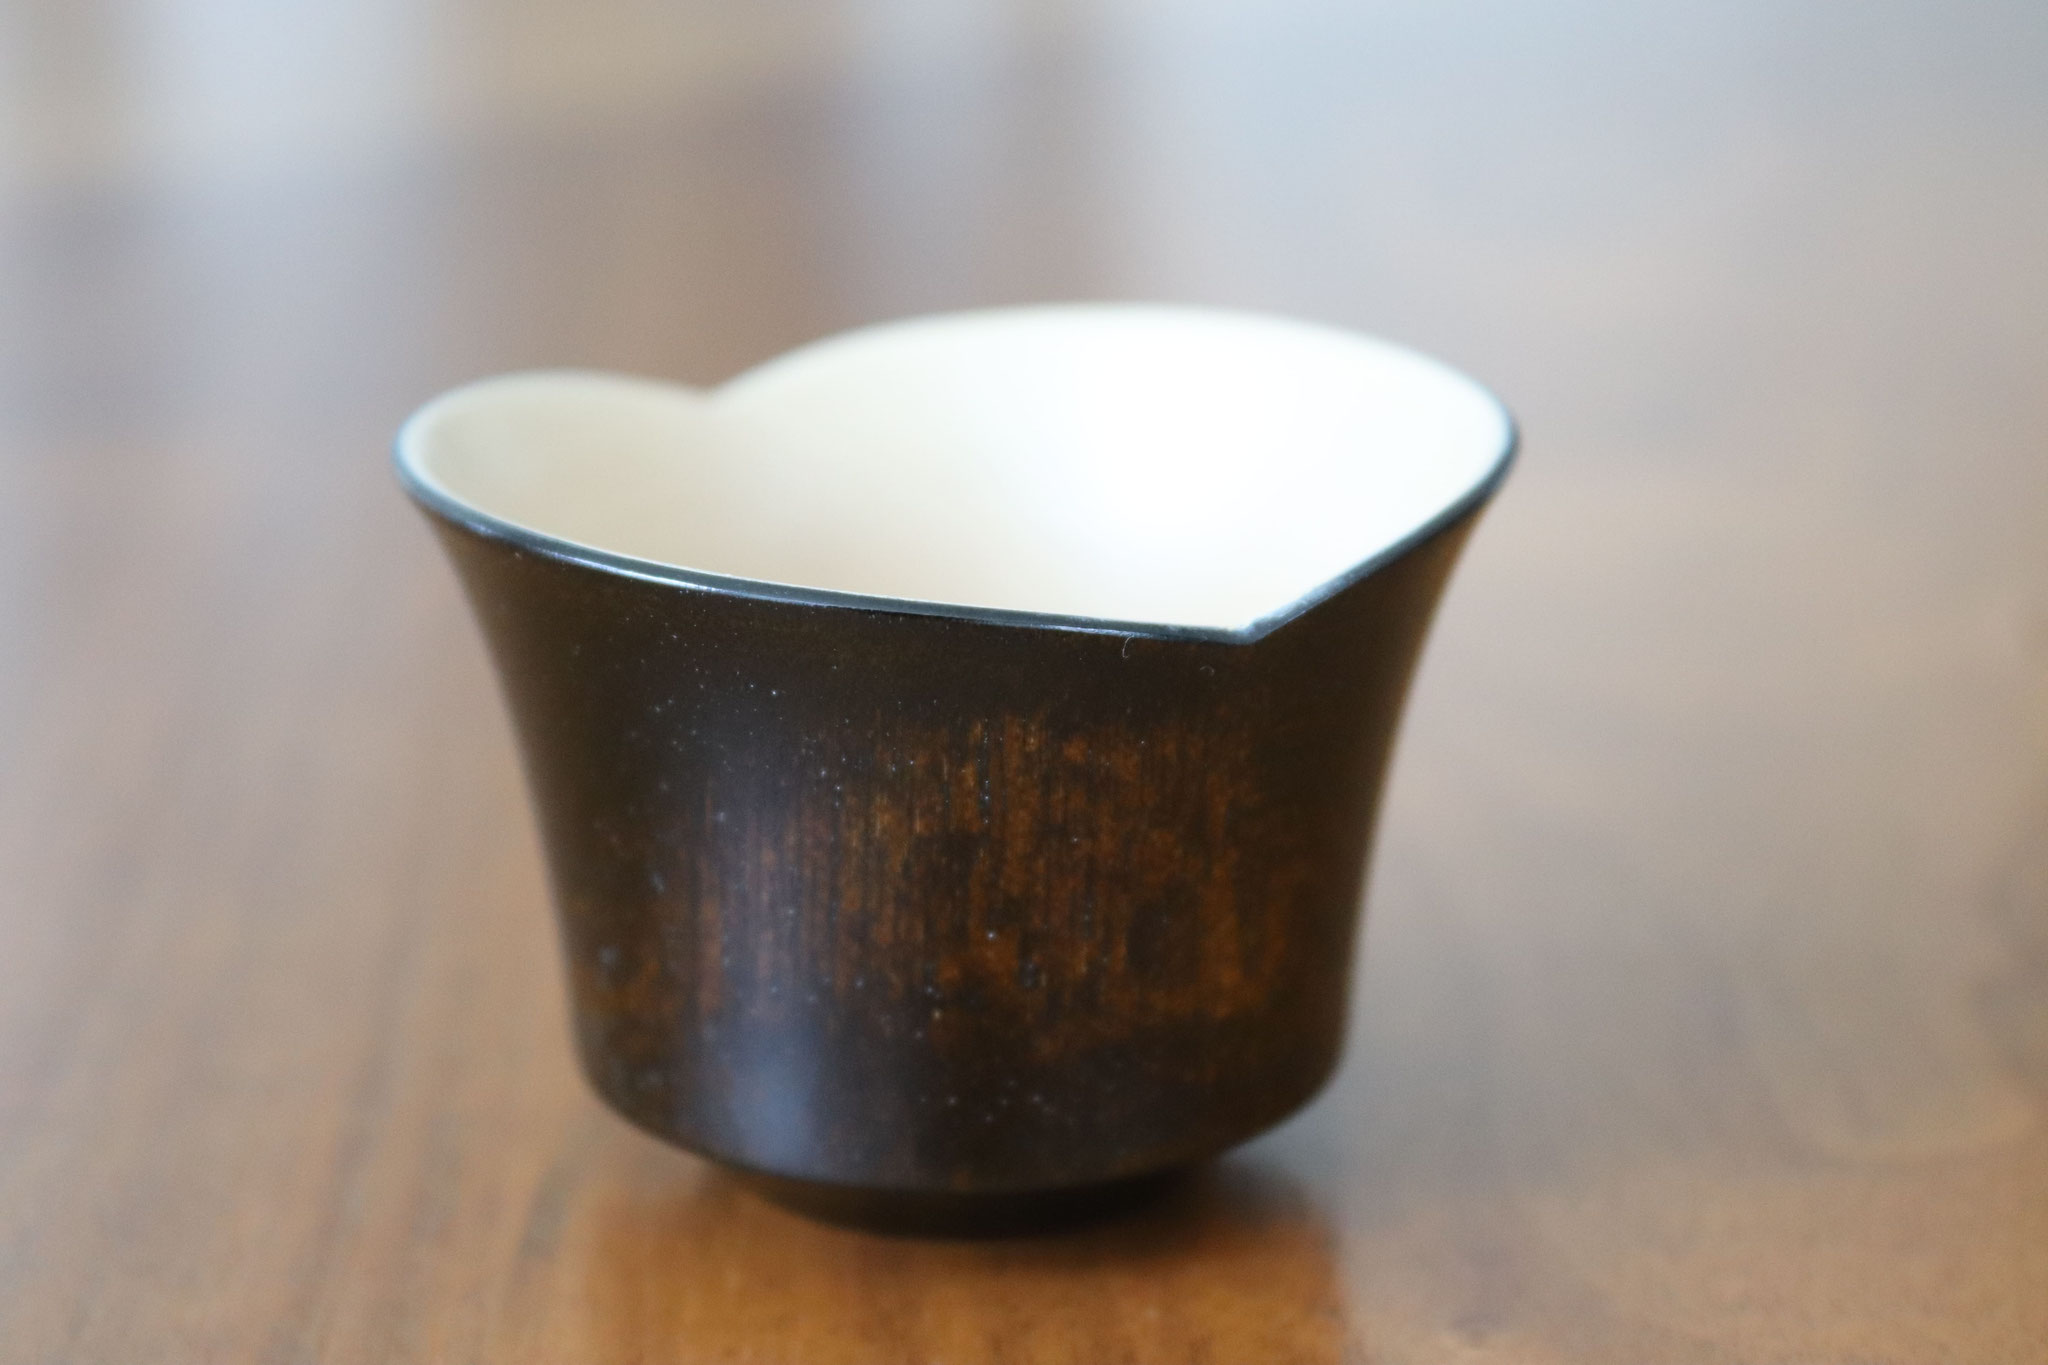 Smiling bean sake cup black